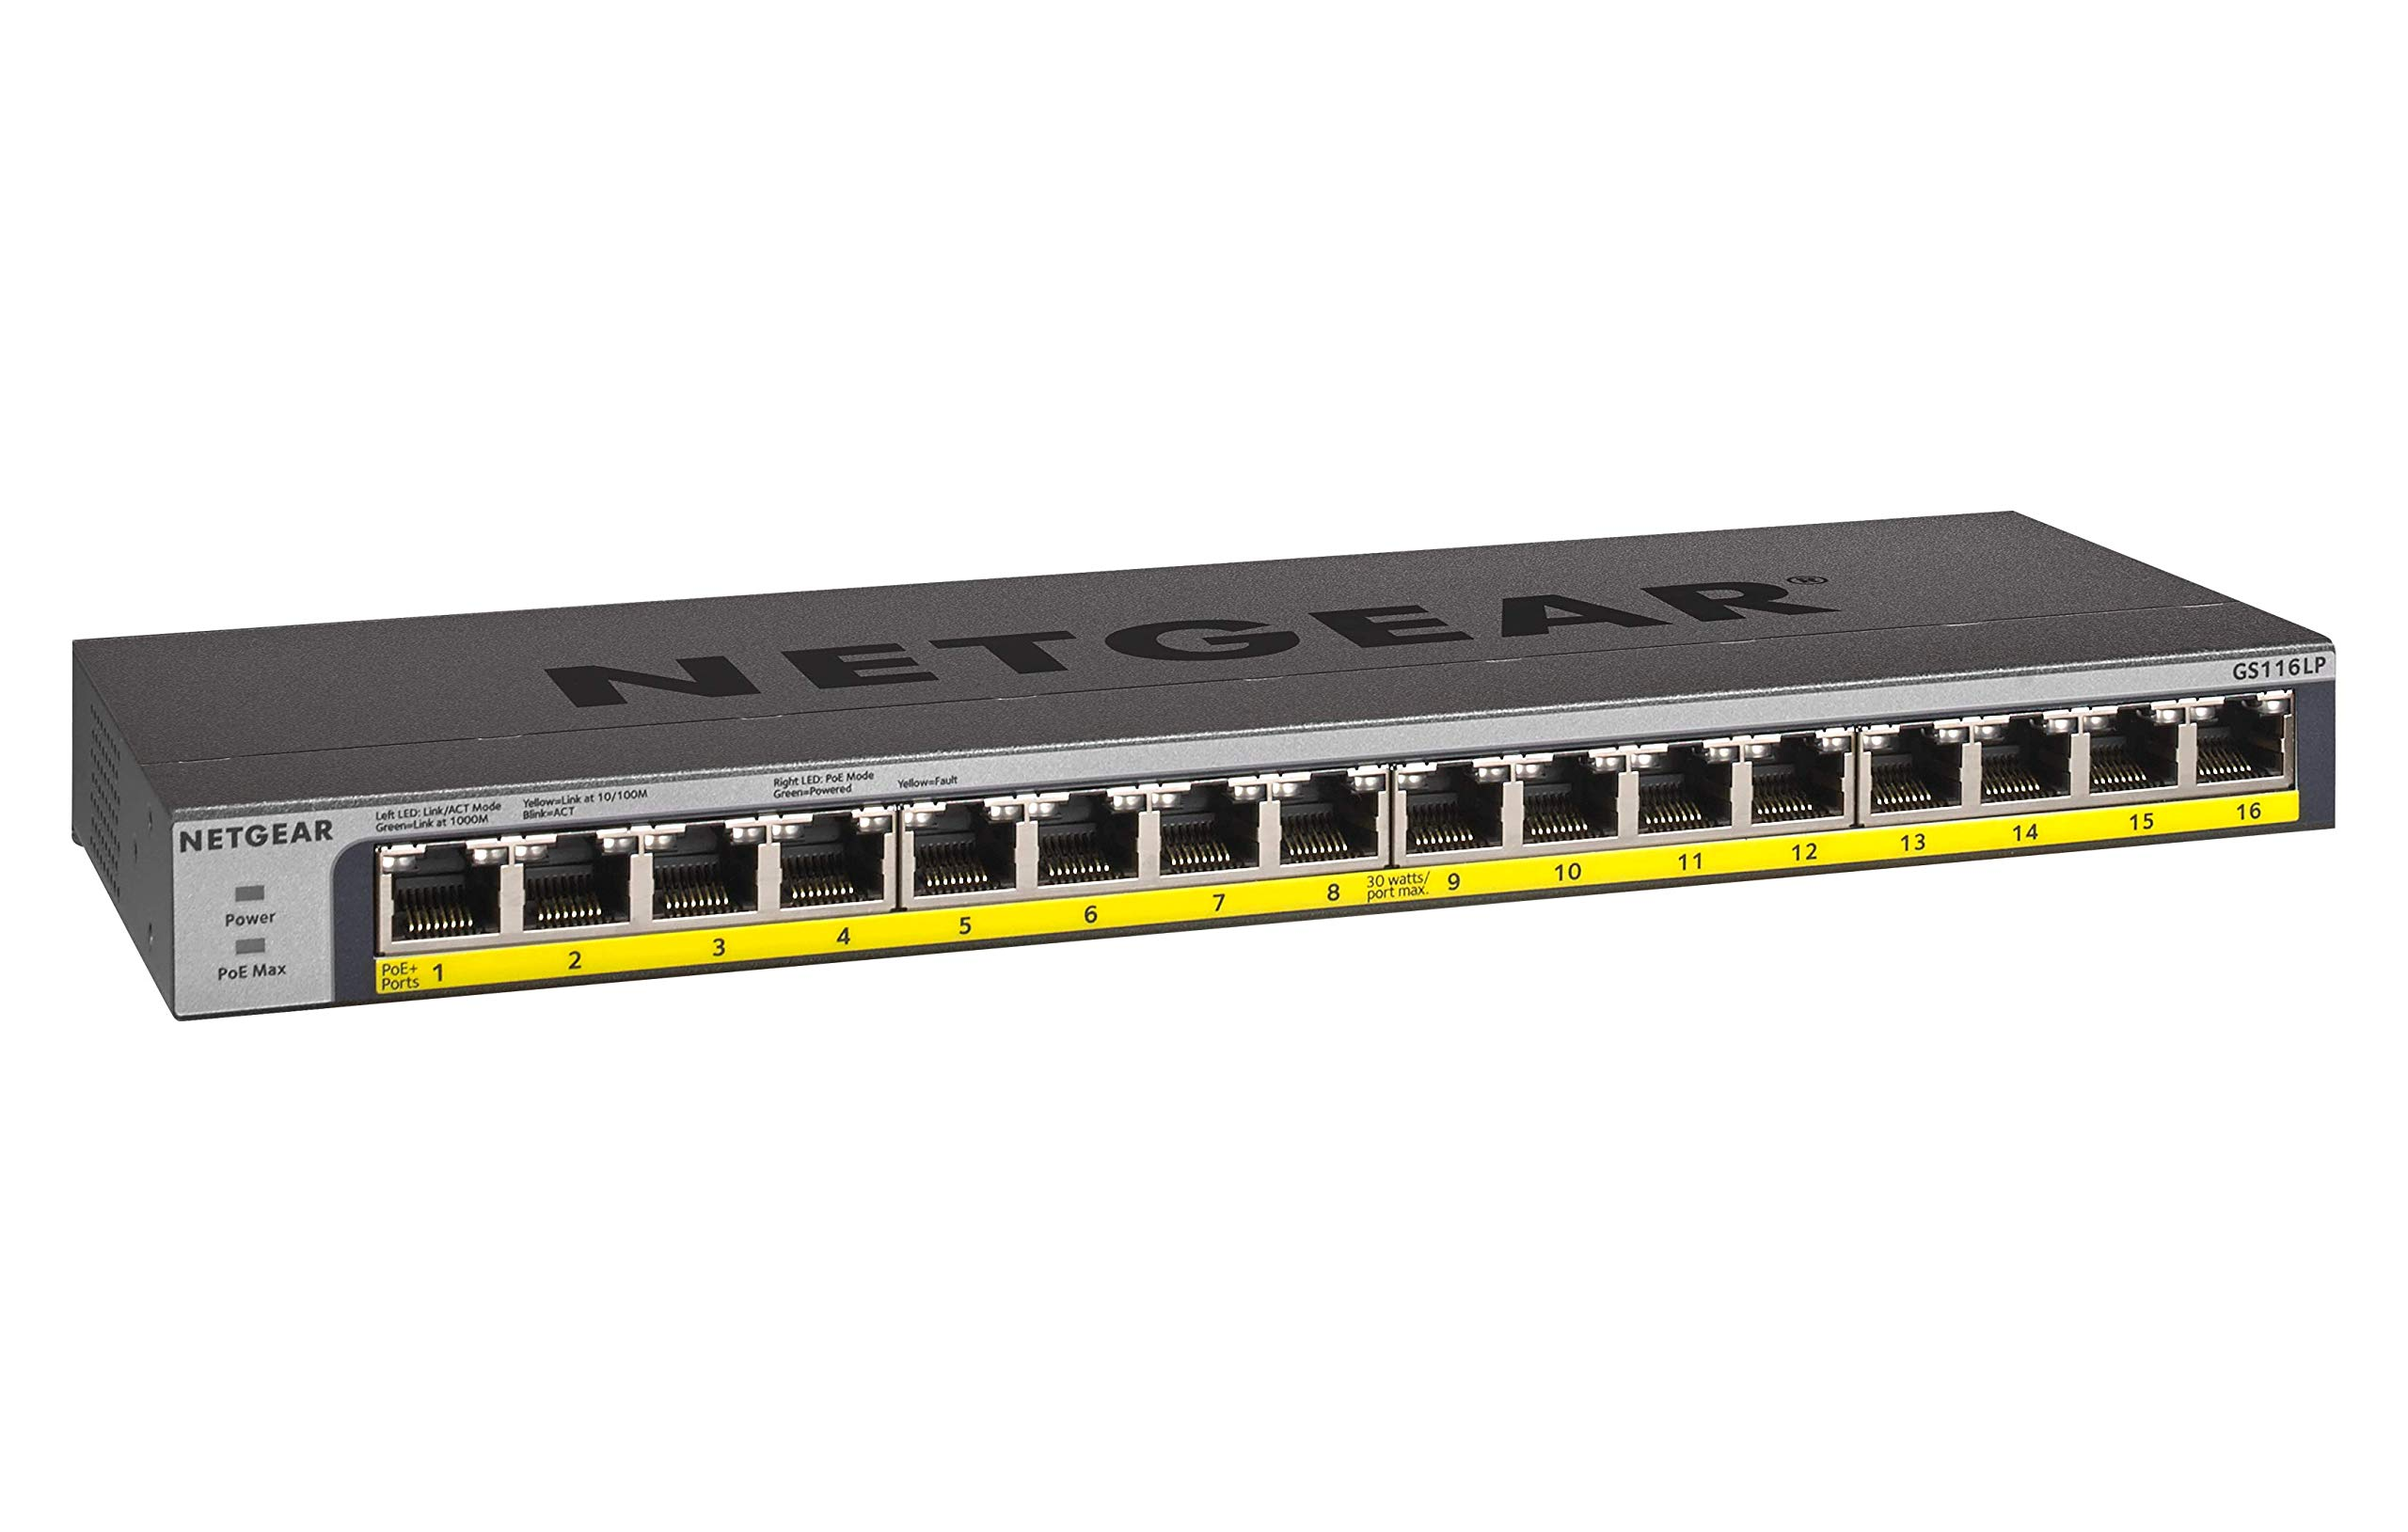 NETGEAR 16-Port Gigabit Ethernet Unmanaged PoE Switch (GS116LP) - with 16 x PoE+ @ 76W Upgradeable, Desktop/Rackmount, and ProSAFE Limited Lifetime Protection by NETGEAR